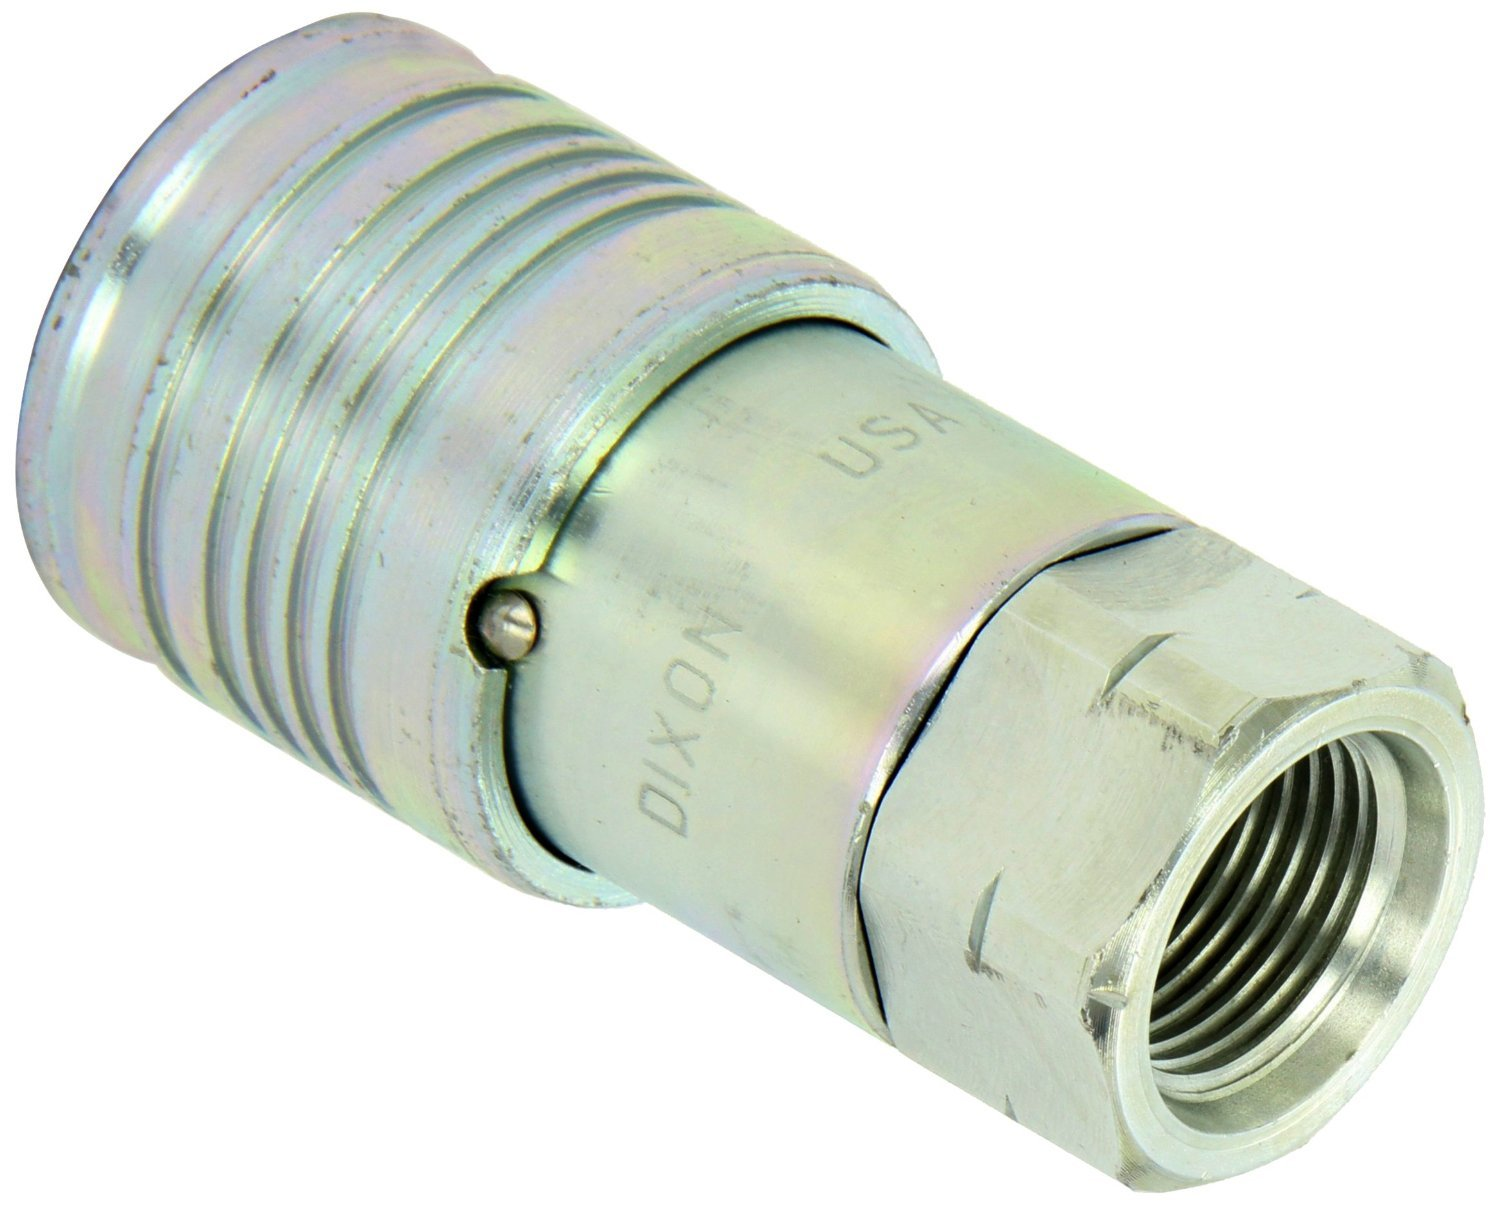 Dixon 4HTOF5 Series Steel Flush Face Hydraulic Quick-Connect Coupler, 1/2'' Coupling x 7/8''-14 SAE ORB Female